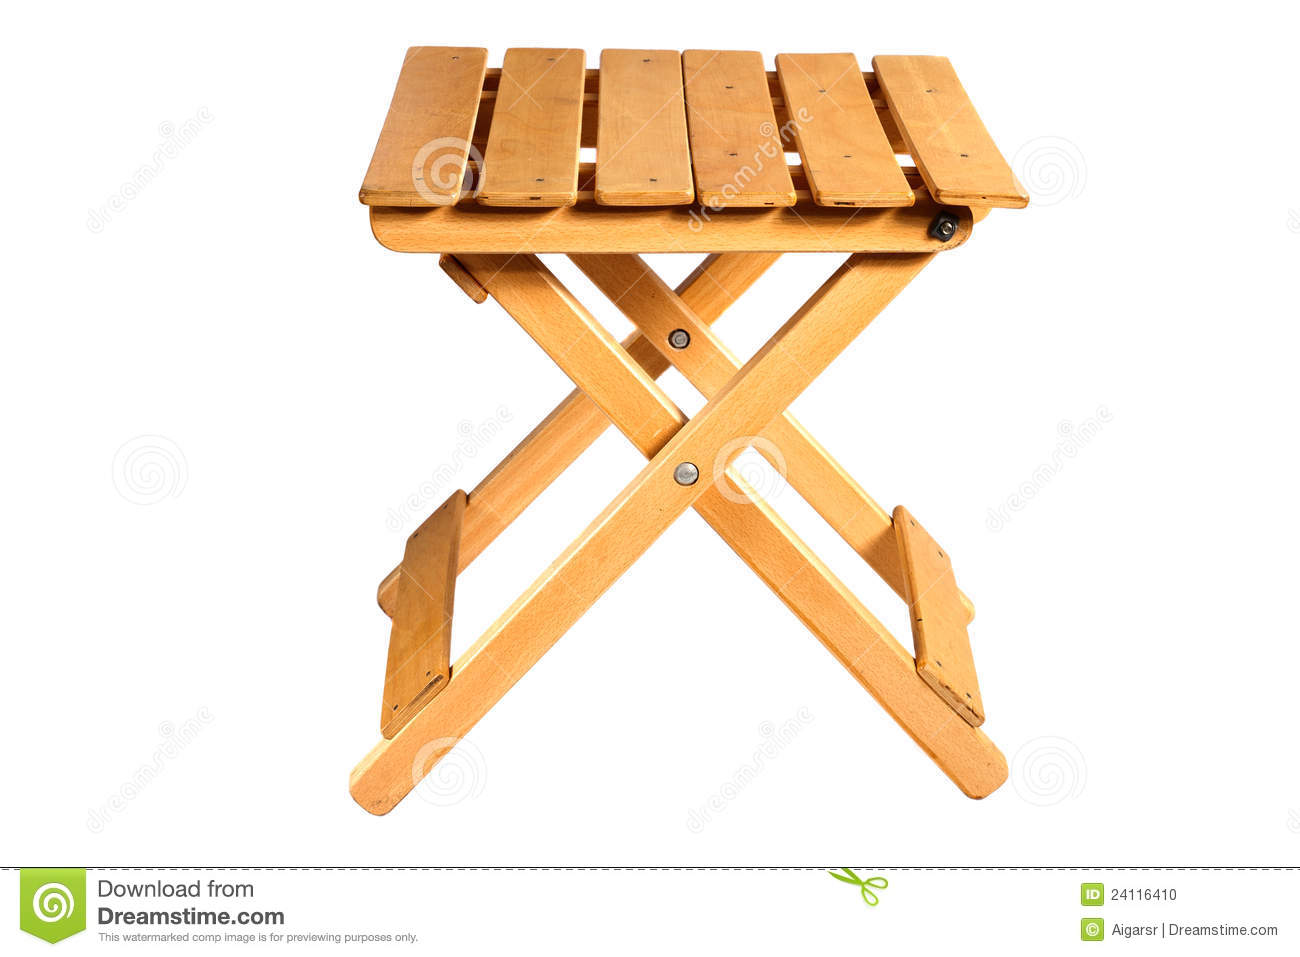 Folding Wooden Chairs Folding Wooden Chair Stock Photo Image Of Seat Brown 24116410